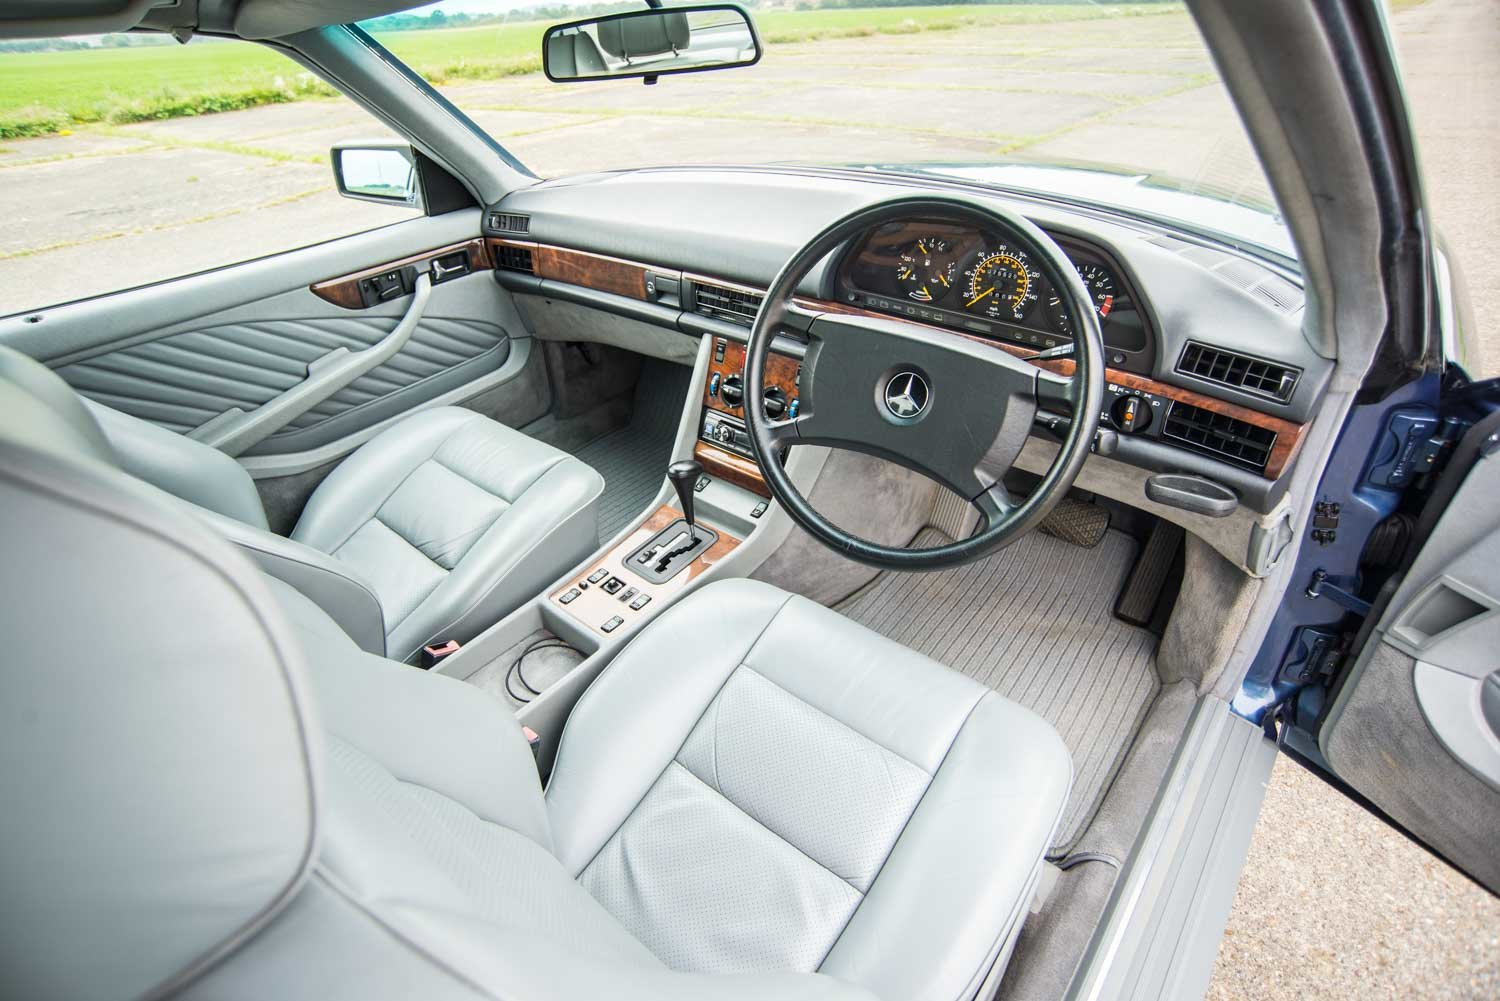 1989 Mercedes-Benz C126 420SEC - 76k Miles - Immaculate For Sale (picture 4 of 6)